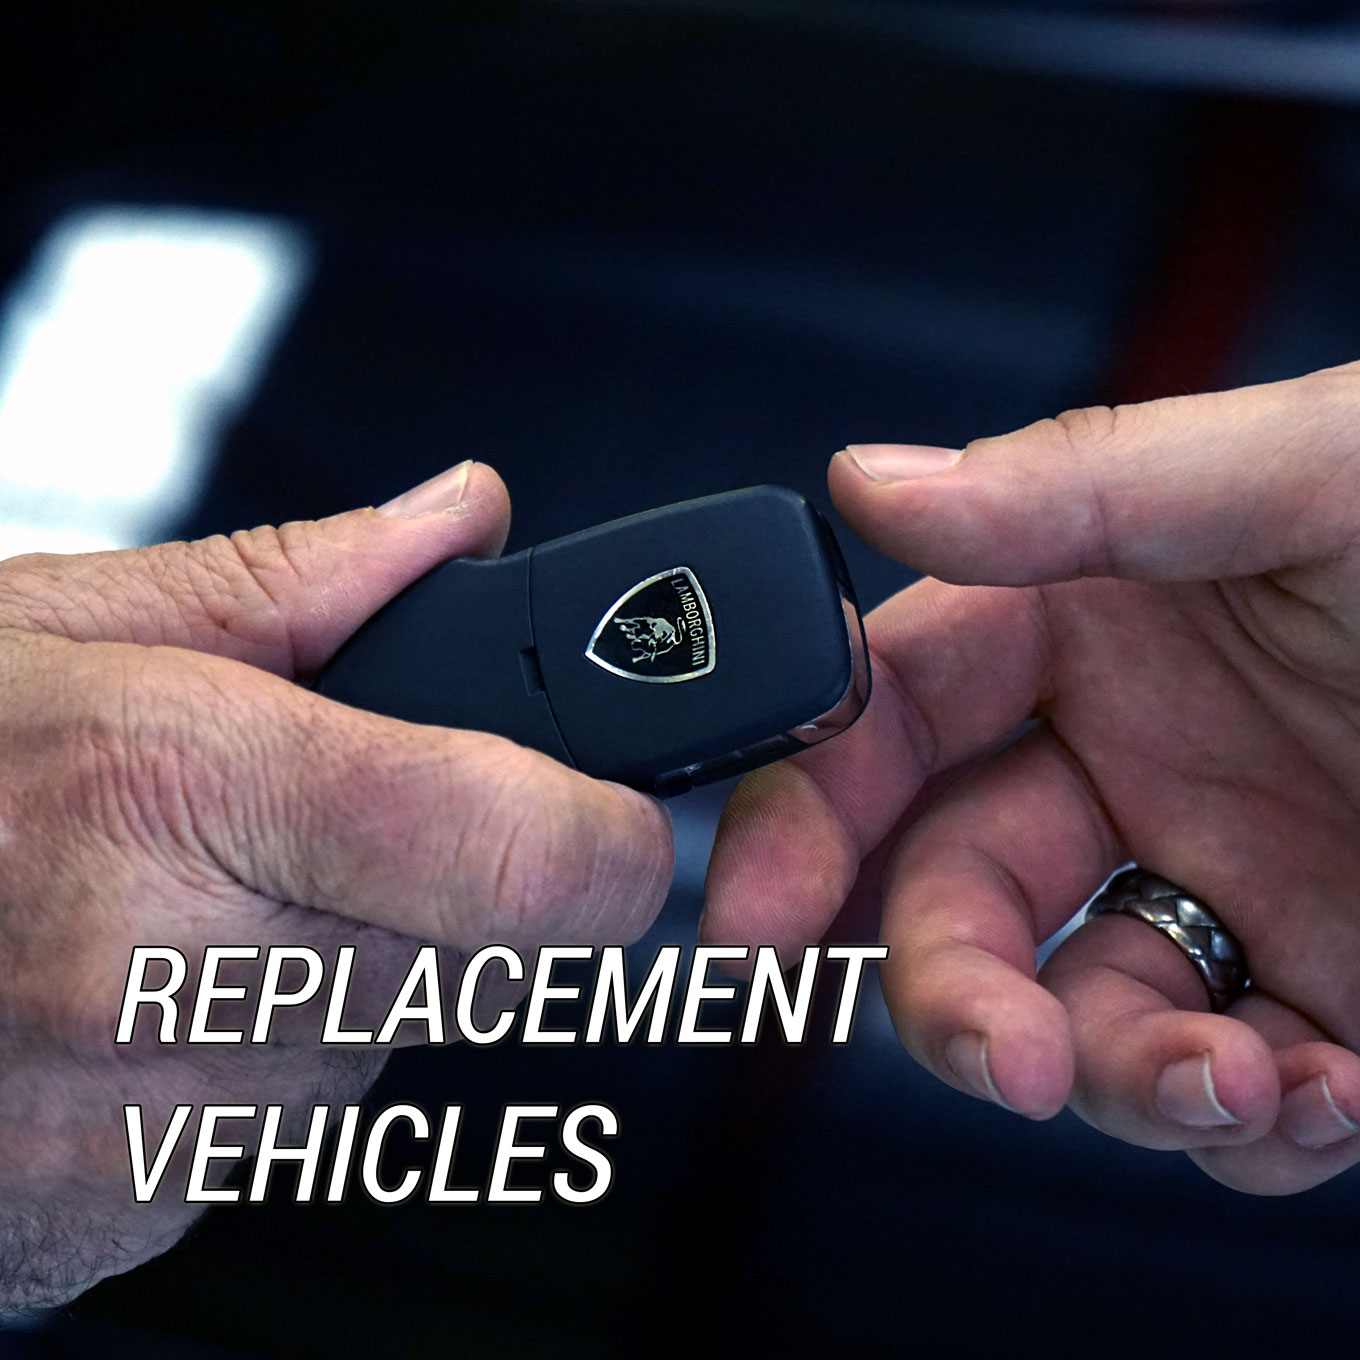 Replacement Vehicles